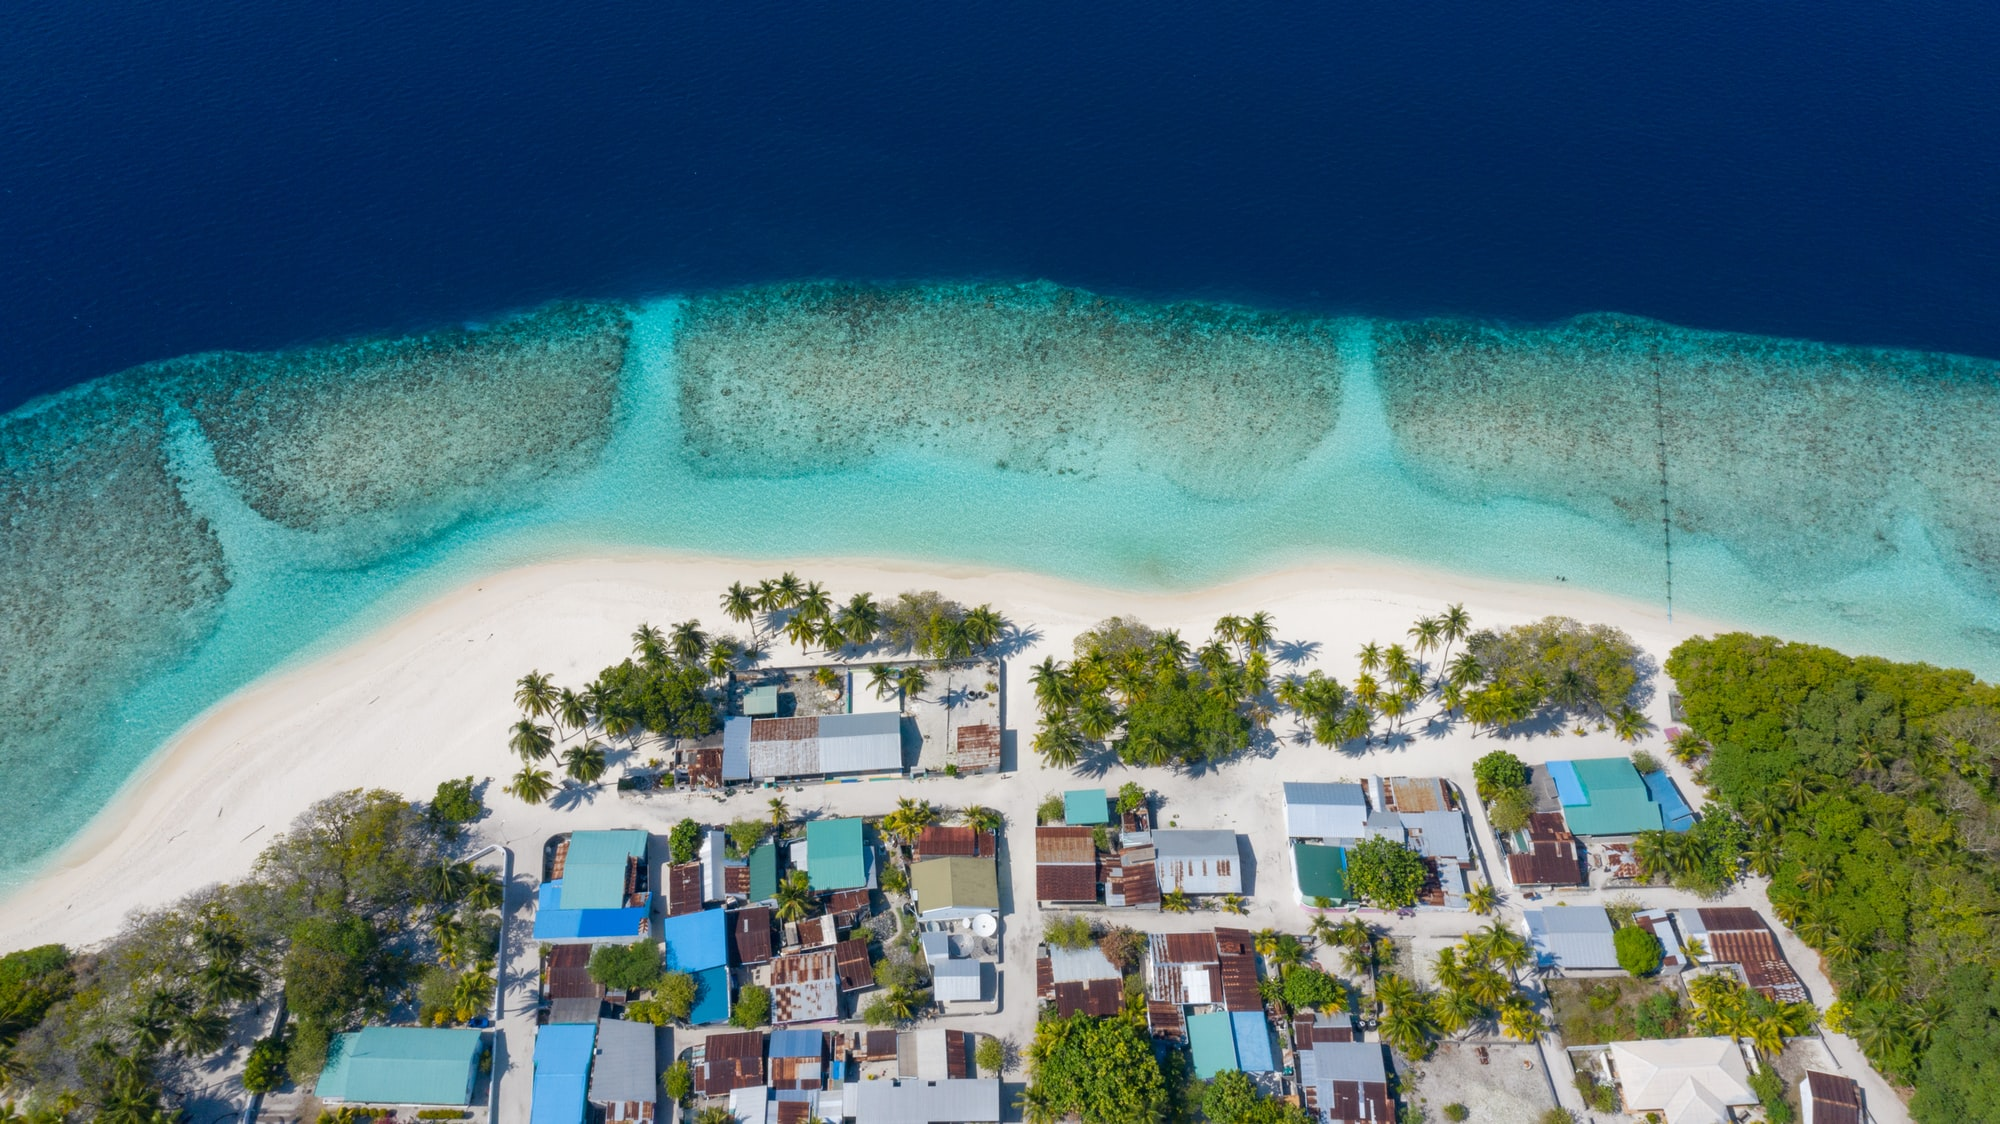 An island in Baa.Atoll in the UNESCO biosphere reserve in the Maldives.